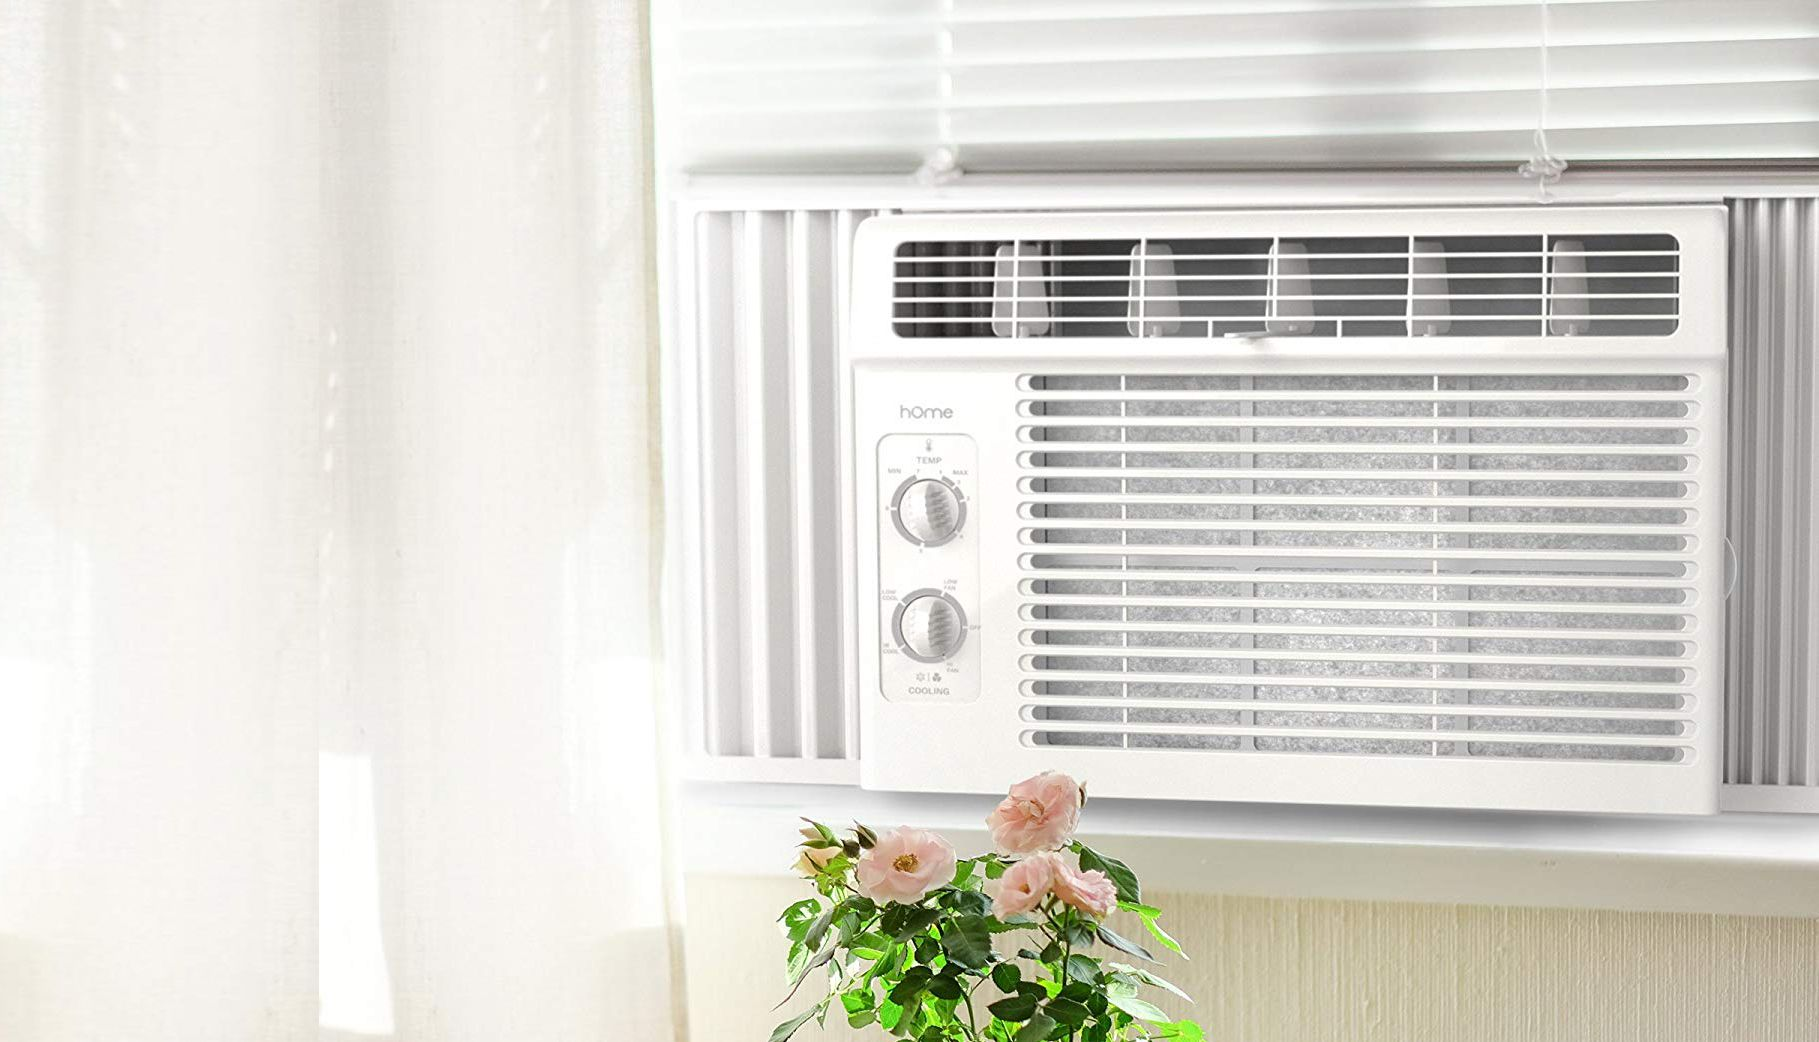 Huzzah 3 Window Air Conditioning Units That Will Actually Fit In Small Windows Small Window Air Conditioner Window Air Conditioning Units Window Air Conditioner